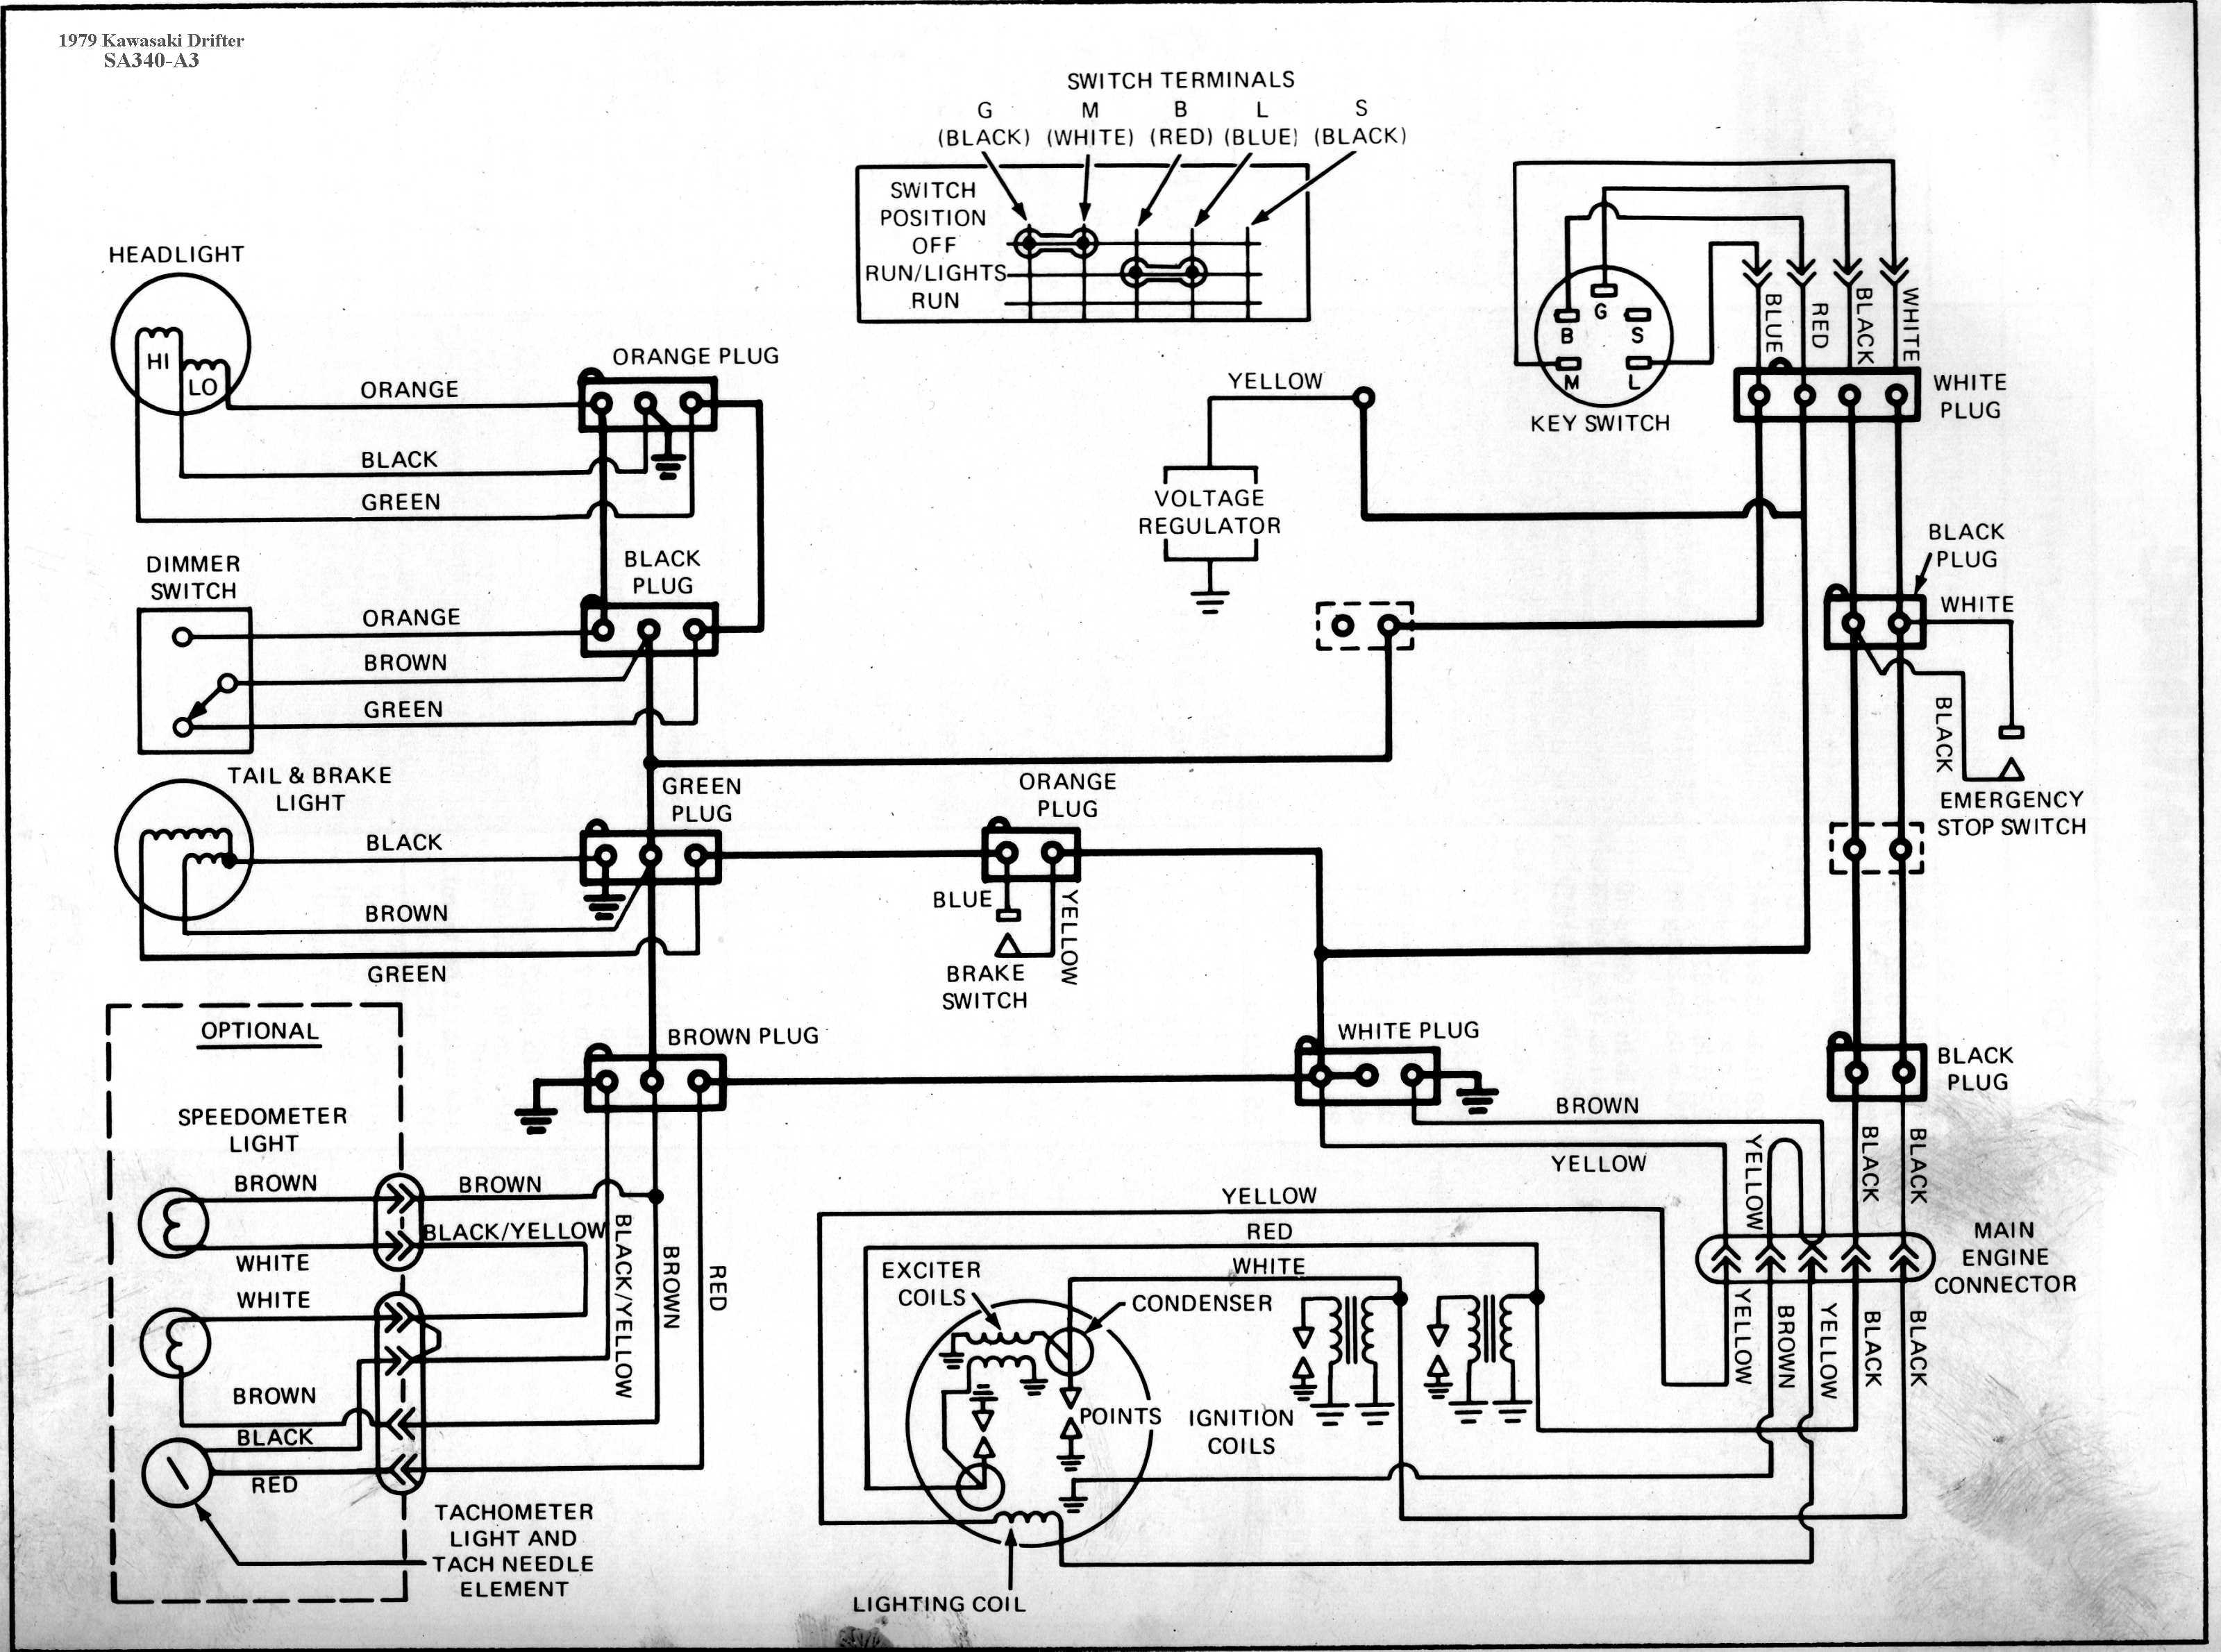 Generic Kawasaki Snowmobile Wiring Diagrams - Repair Wiring Scheme